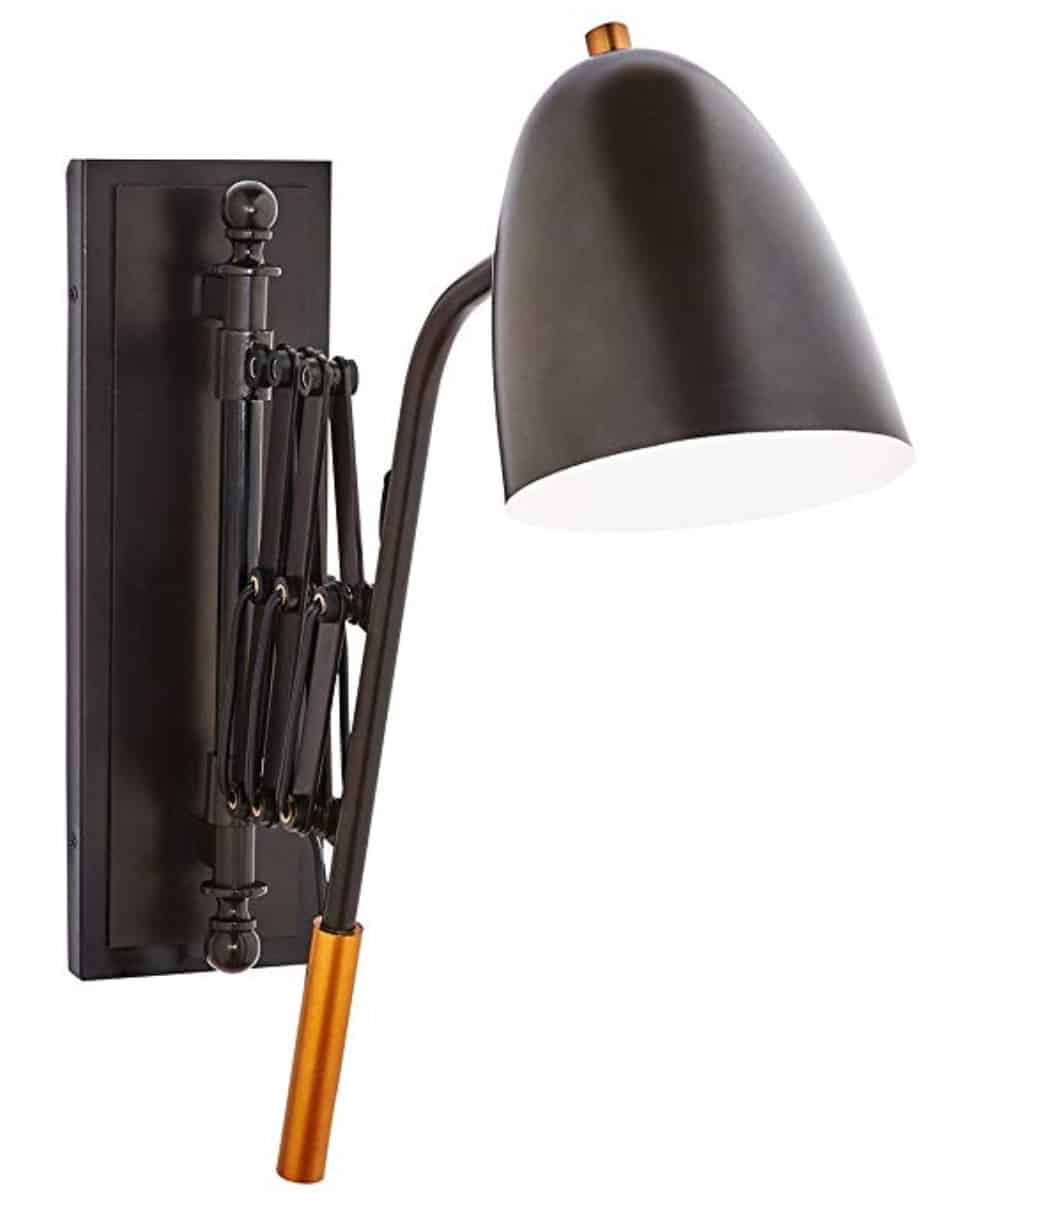 Stone & Beam Deco Black Accordion Arm Wall Mount Sconce Light Fixture with Metal Shade - 20 x 28 x 6 Inches, Dark Bronze with Brass Accent